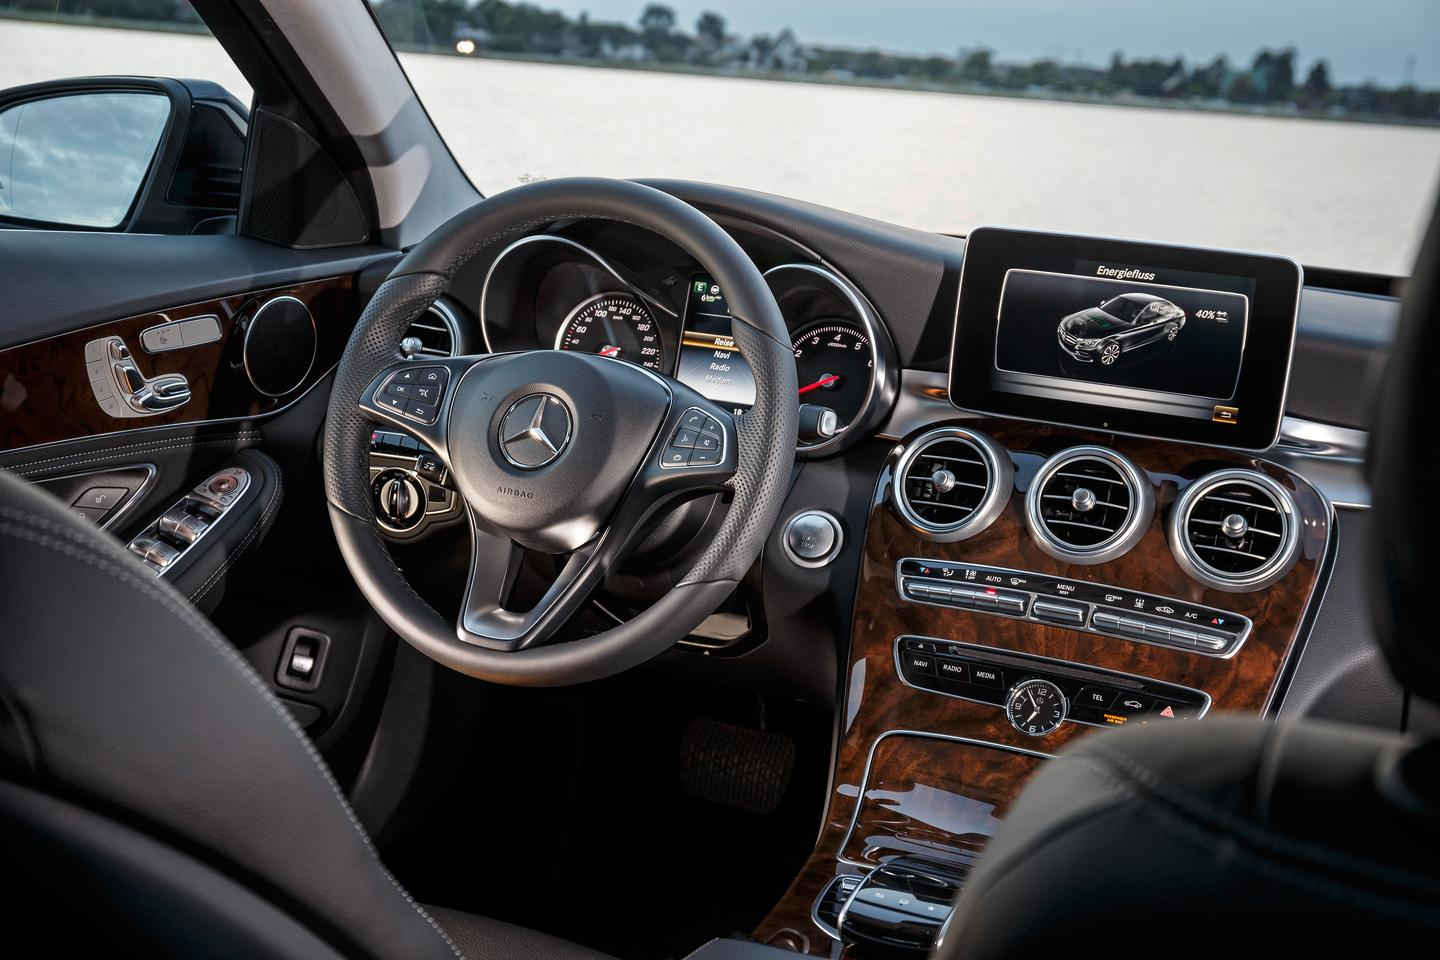 The C-Class Plug-In Hybrid's interior is the same as that on the standard C-Class